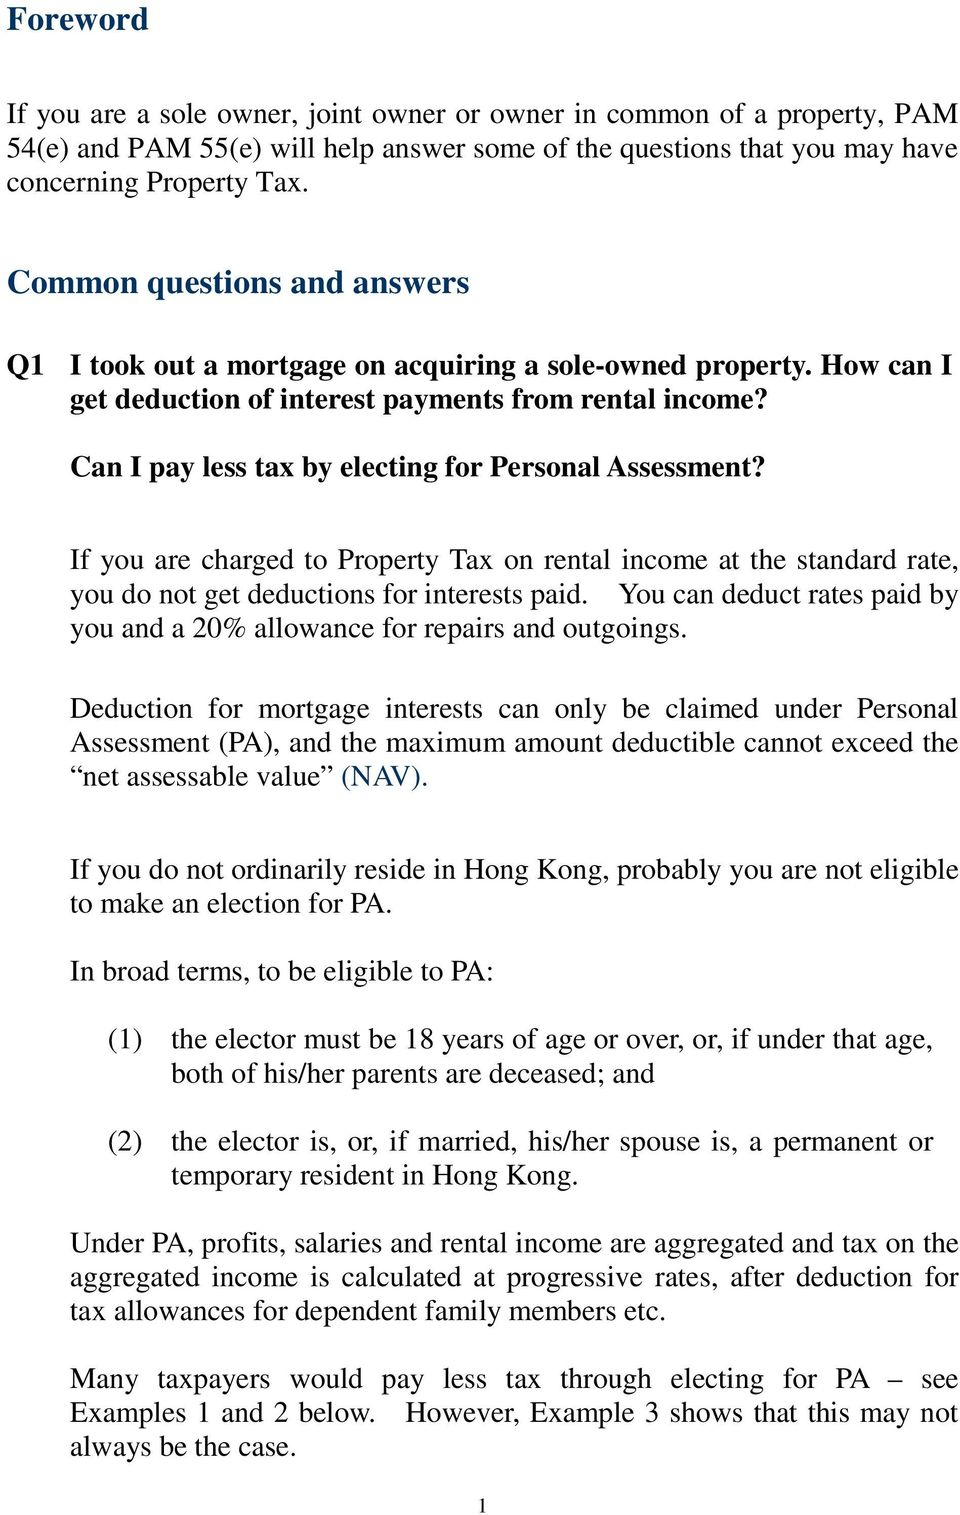 Can I pay less tax by electing for Personal Assessment? If you are charged to Property Tax on rental income at the standard rate, you do not get deductions for interests paid.